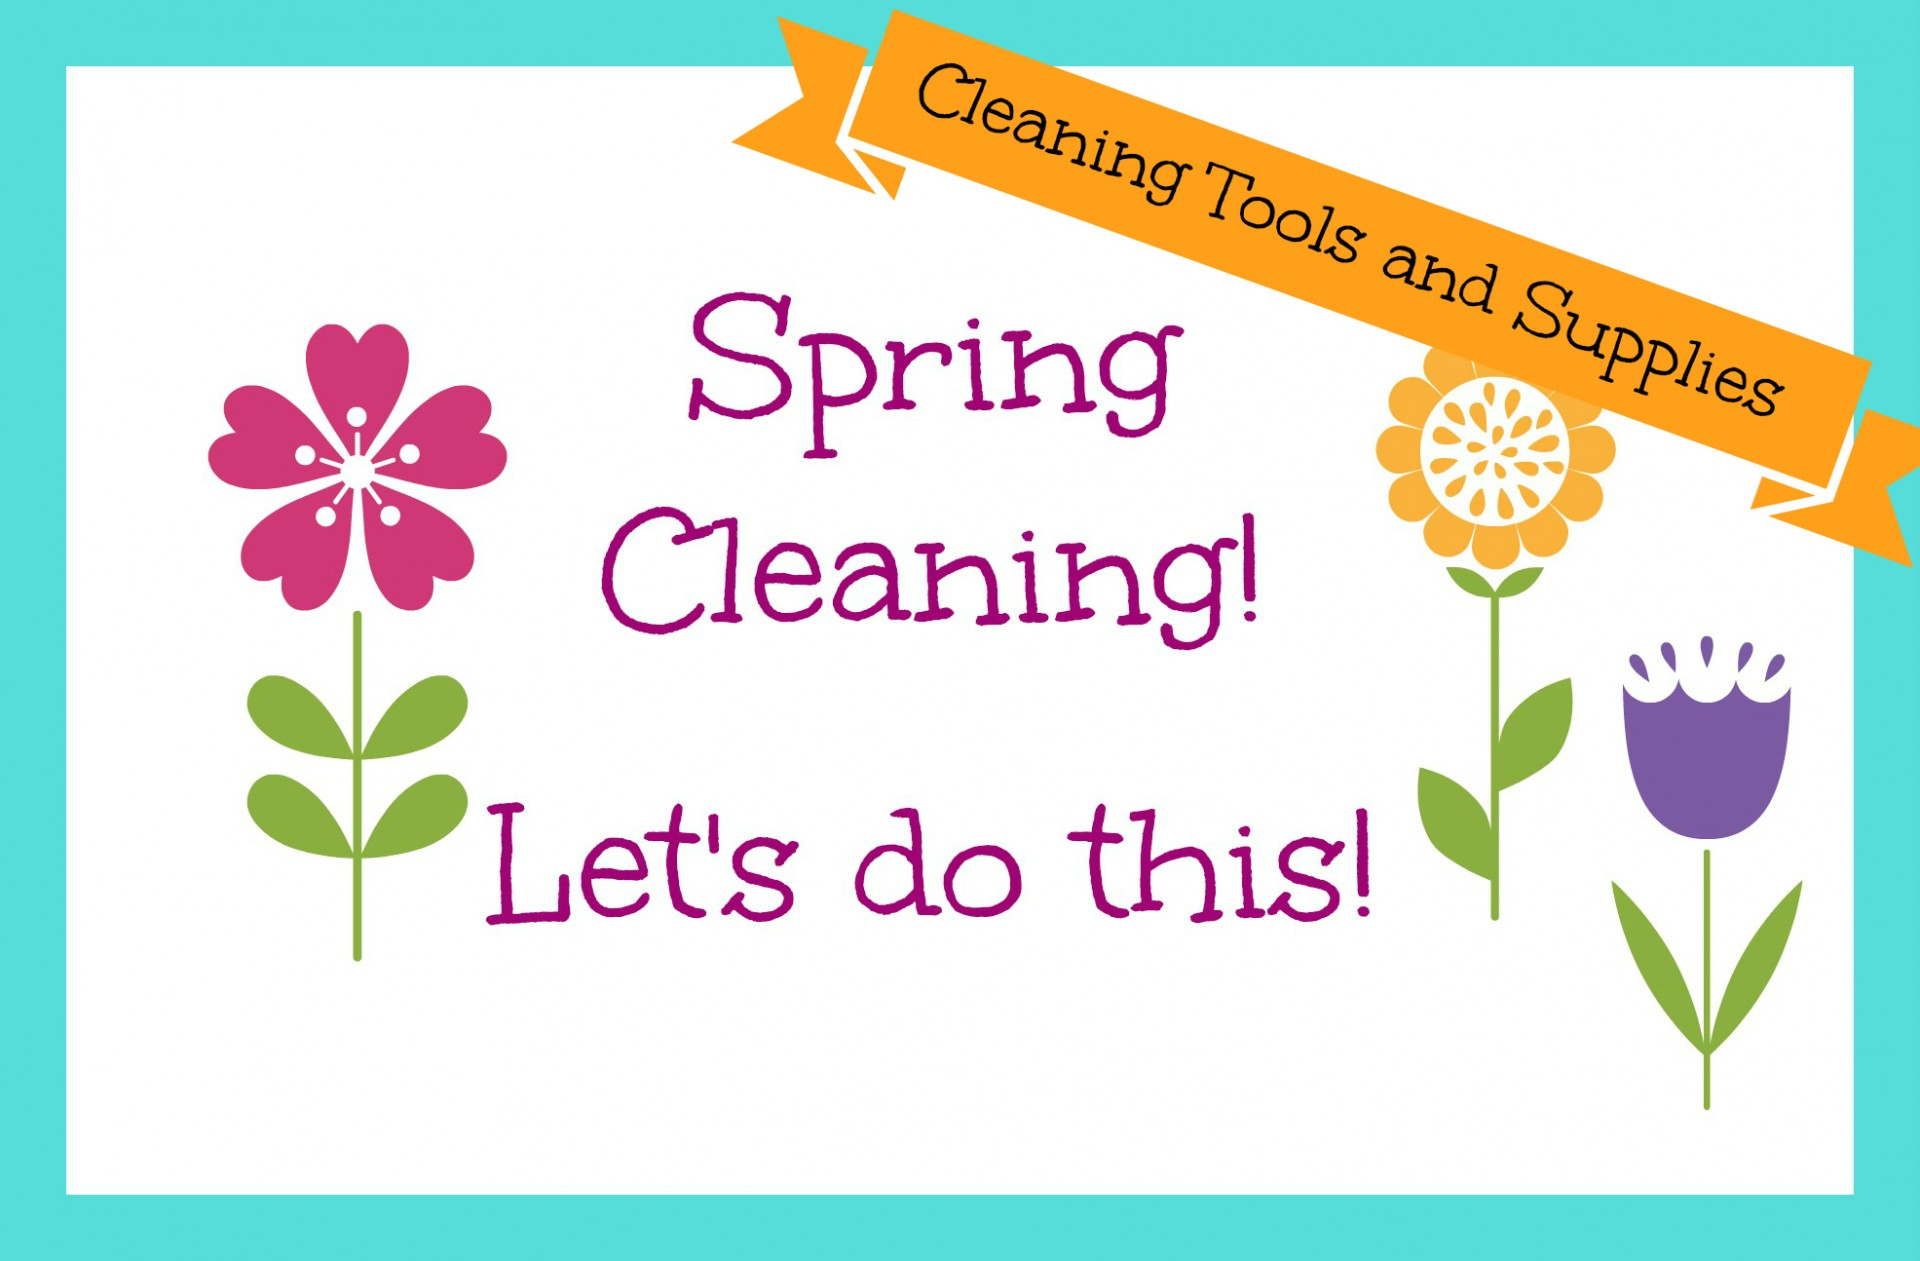 Spring Cleaning Supplies And Tools To Get It Done